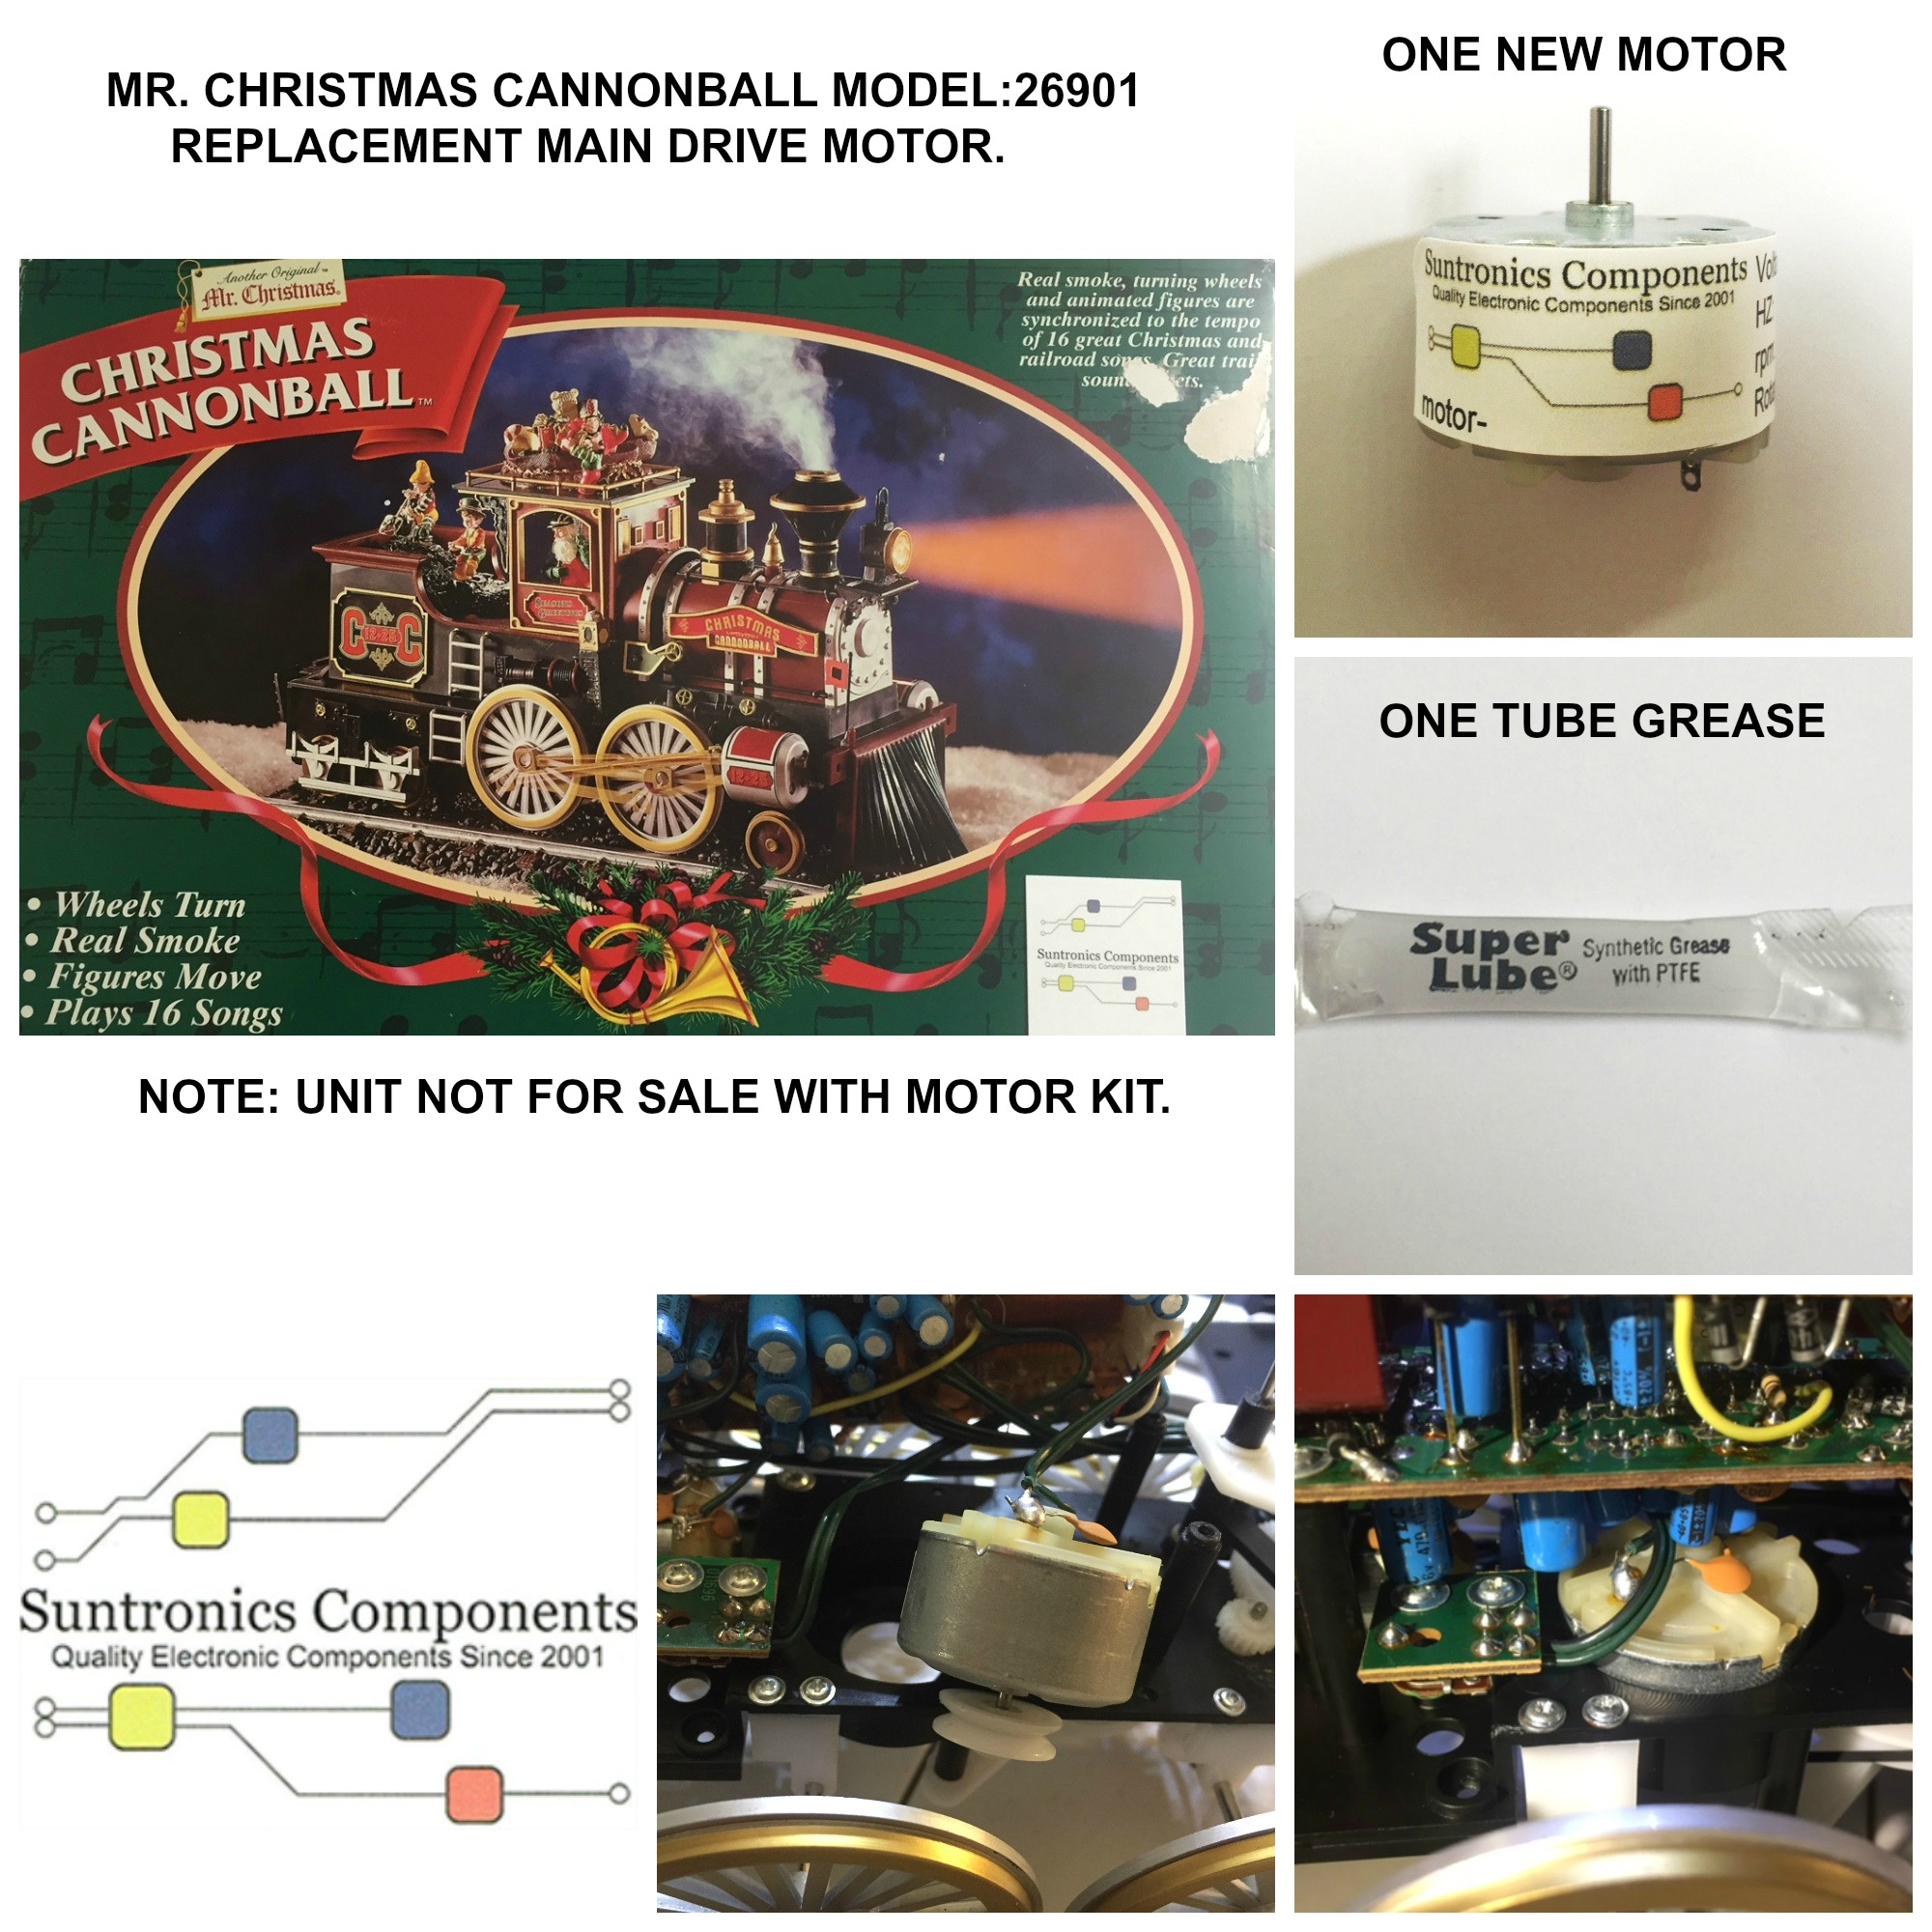 PicMonkey Image MR CHRISTMAS CANNONBALL MOTOR KIT  MODEL 26901.JPG